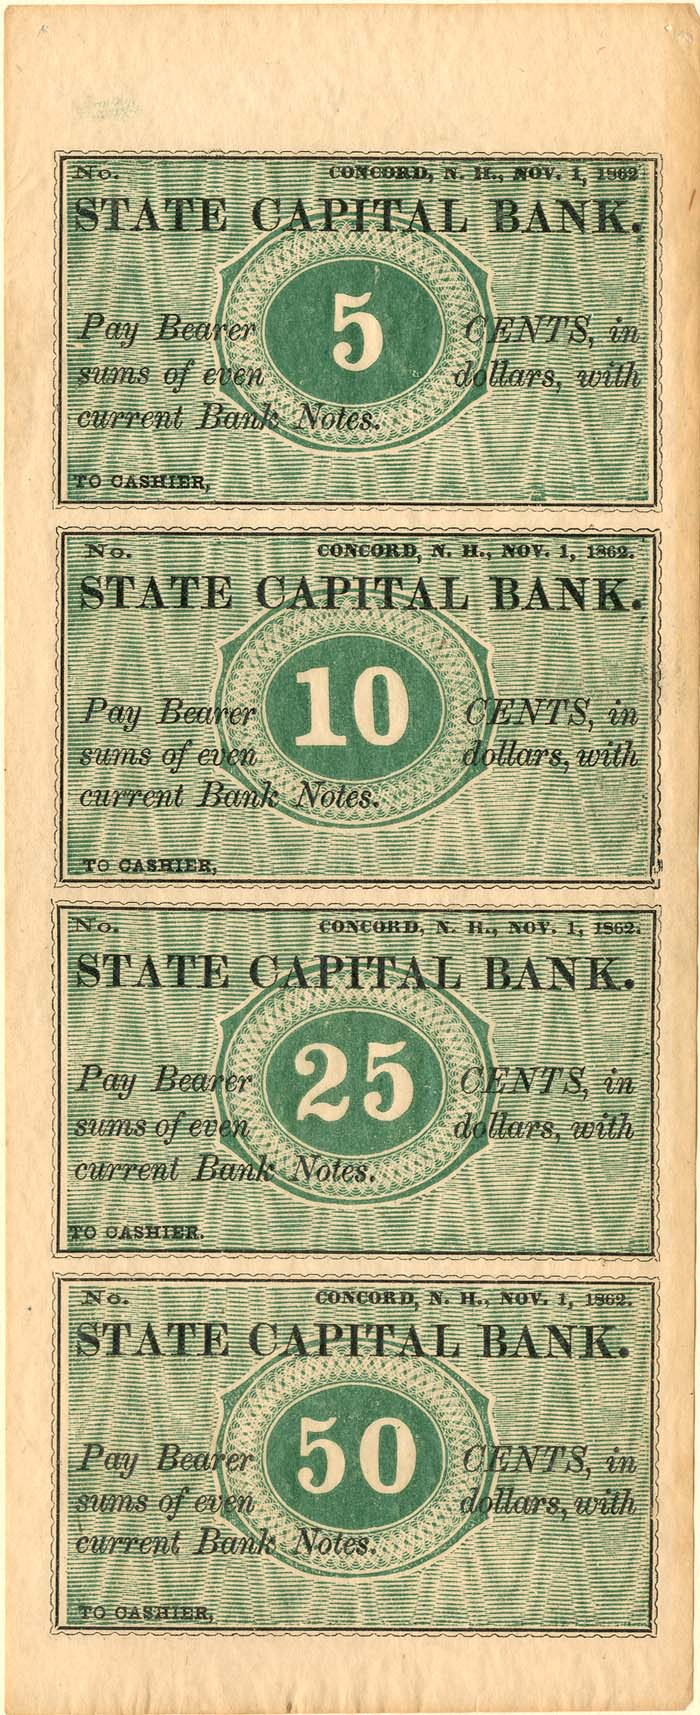 State Capital Bank - Uncut Obsolete Sheet - Broken Bank Notes - SOLD